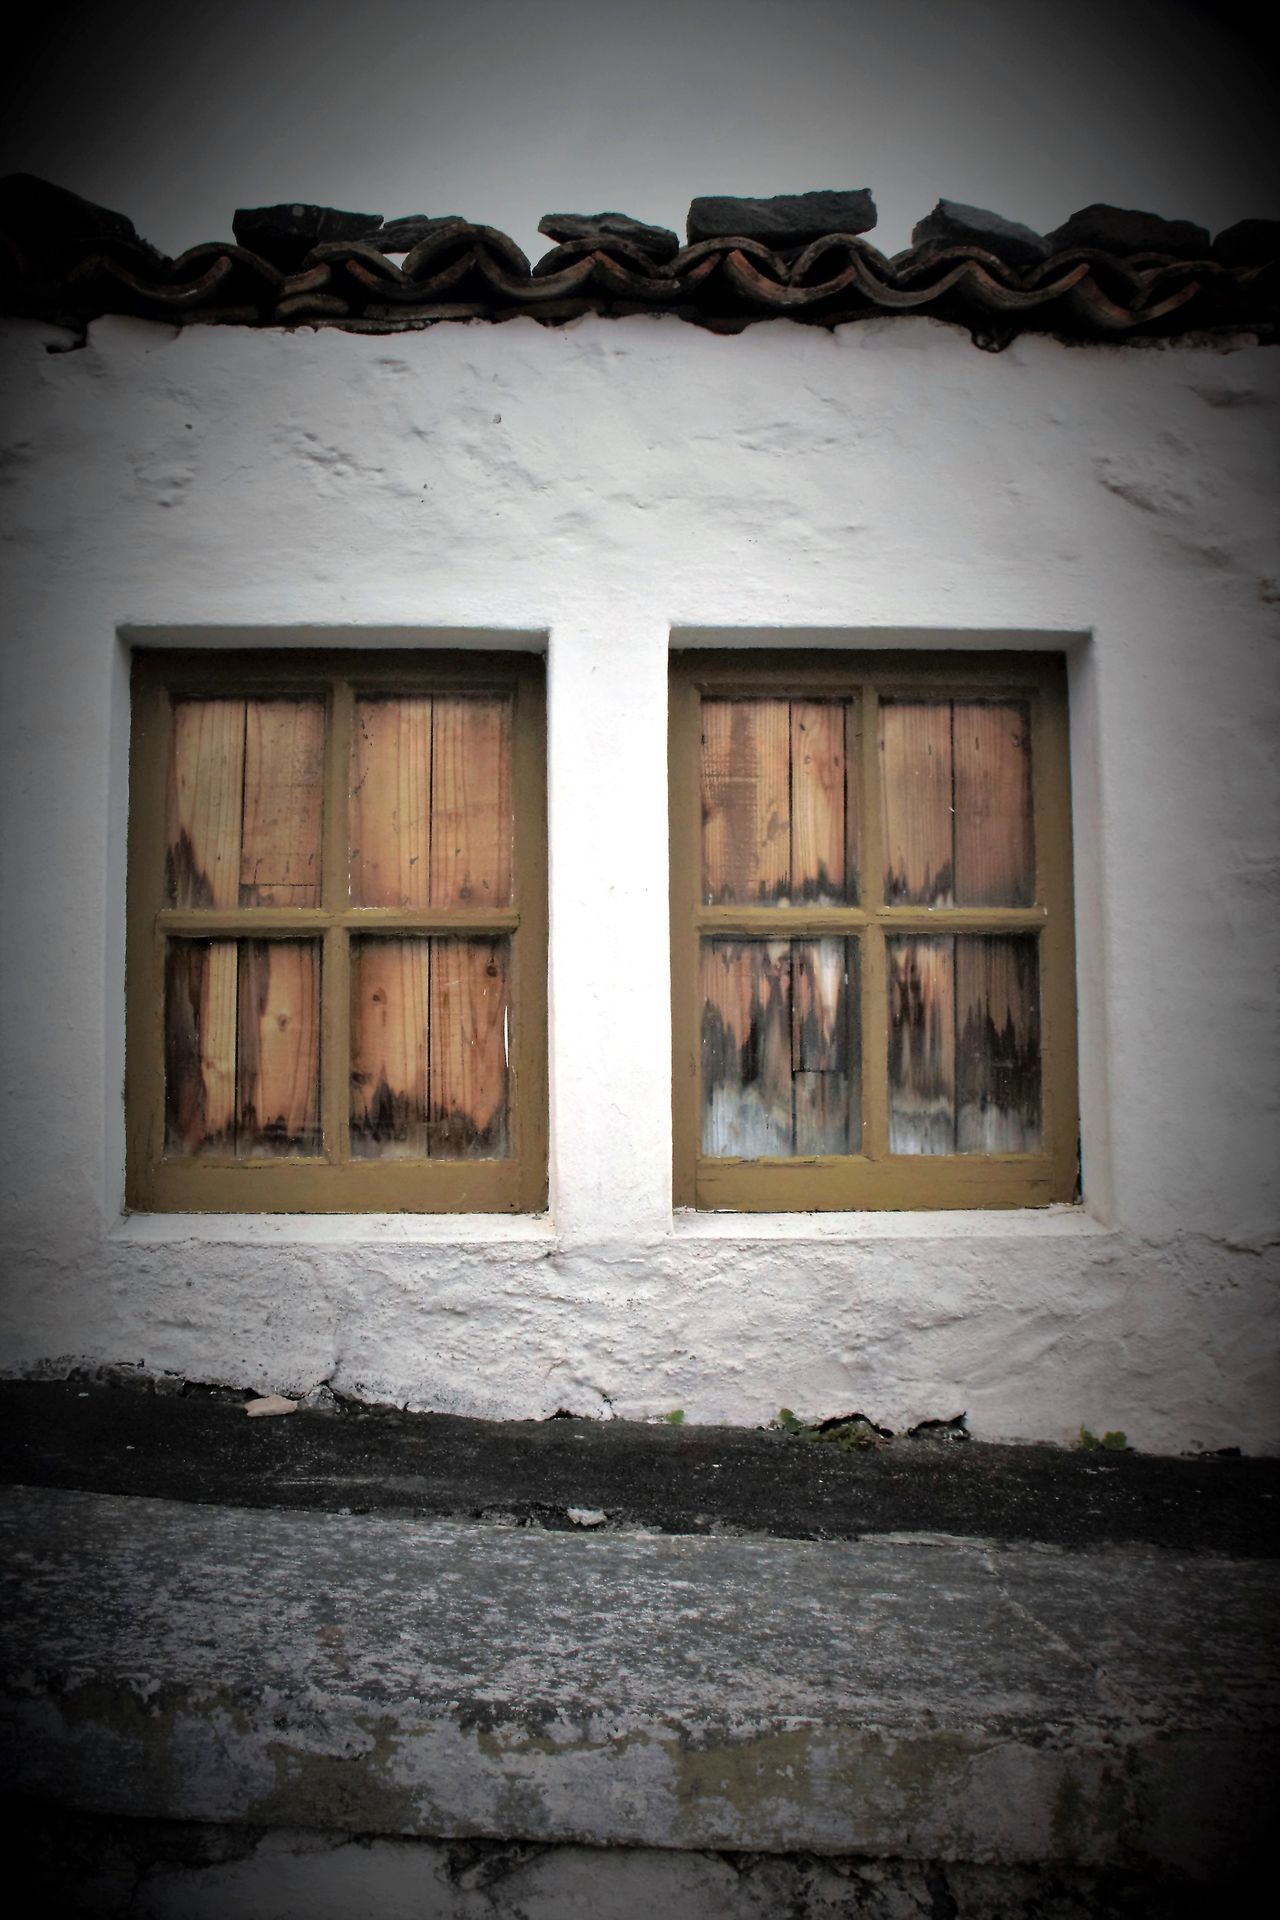 Windows.2 Architecture Blinds Shut Building Exterior Built Structure Closed Contrasting Colors Day Door Façade House Moulded Beauty No People Old Barn Outdoors Stone Material Weathered Window Window Frame Wooden Blinds